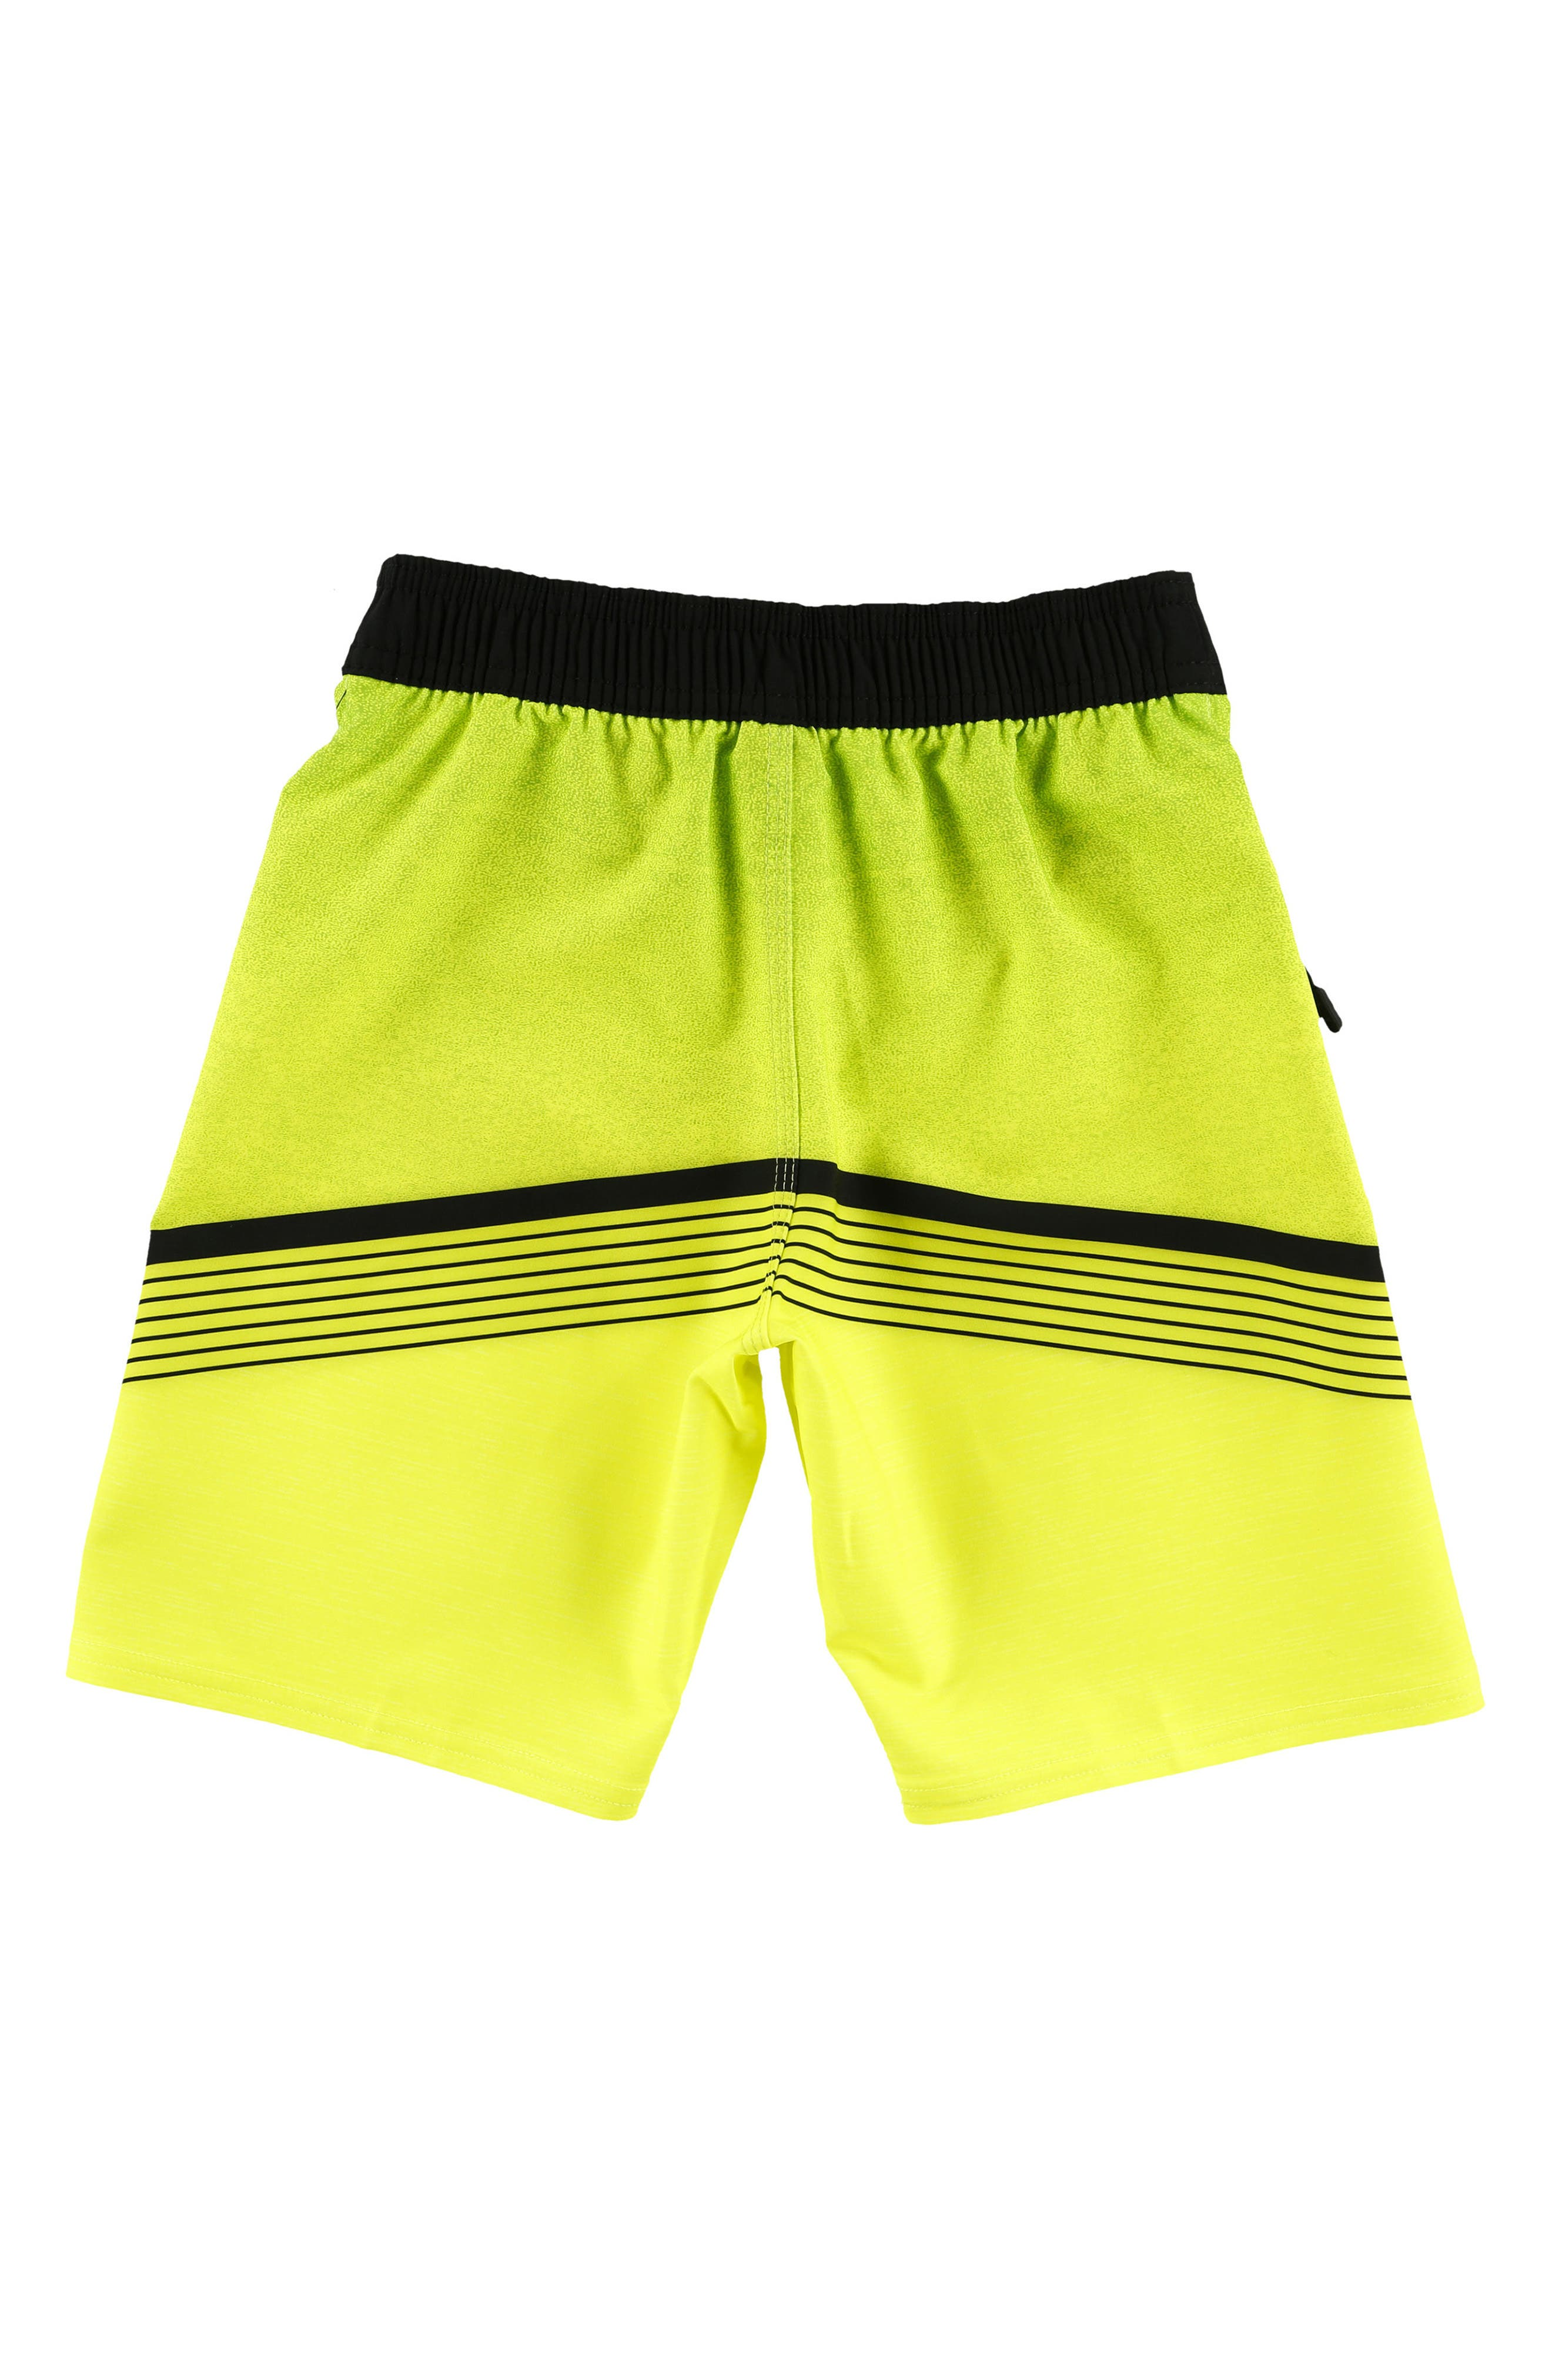 Hyperfreak Stretch Board Shorts,                             Alternate thumbnail 2, color,                             300